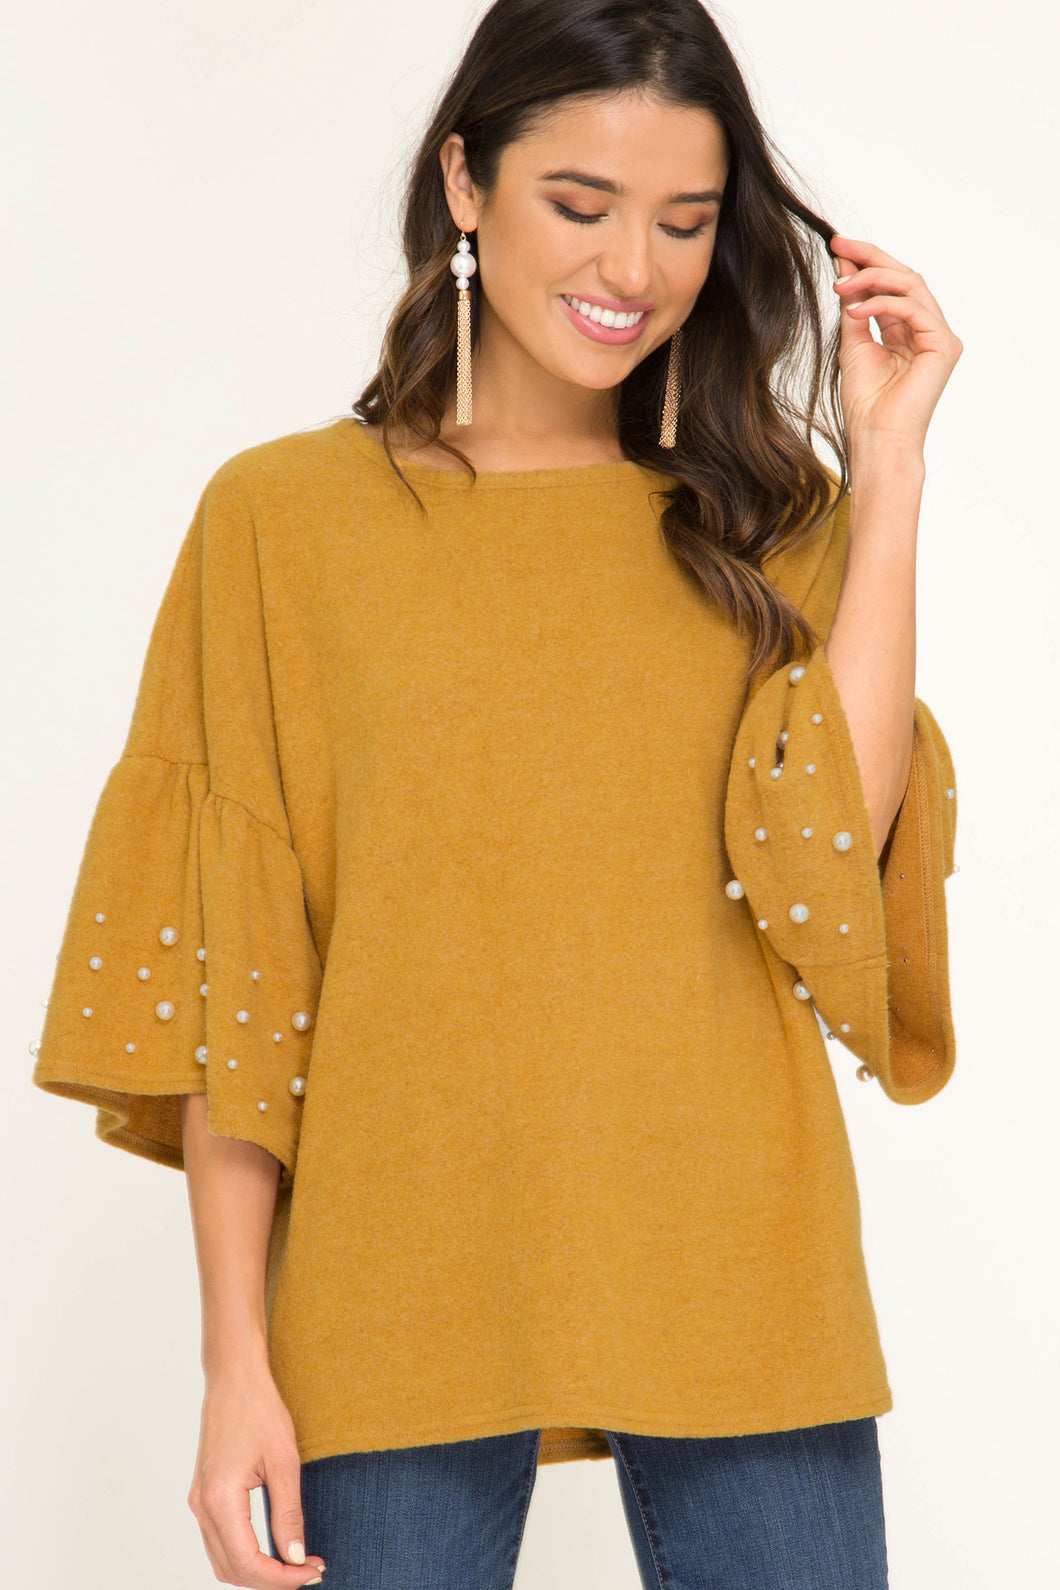 Ruffle Sleeve Top With Pearl Details